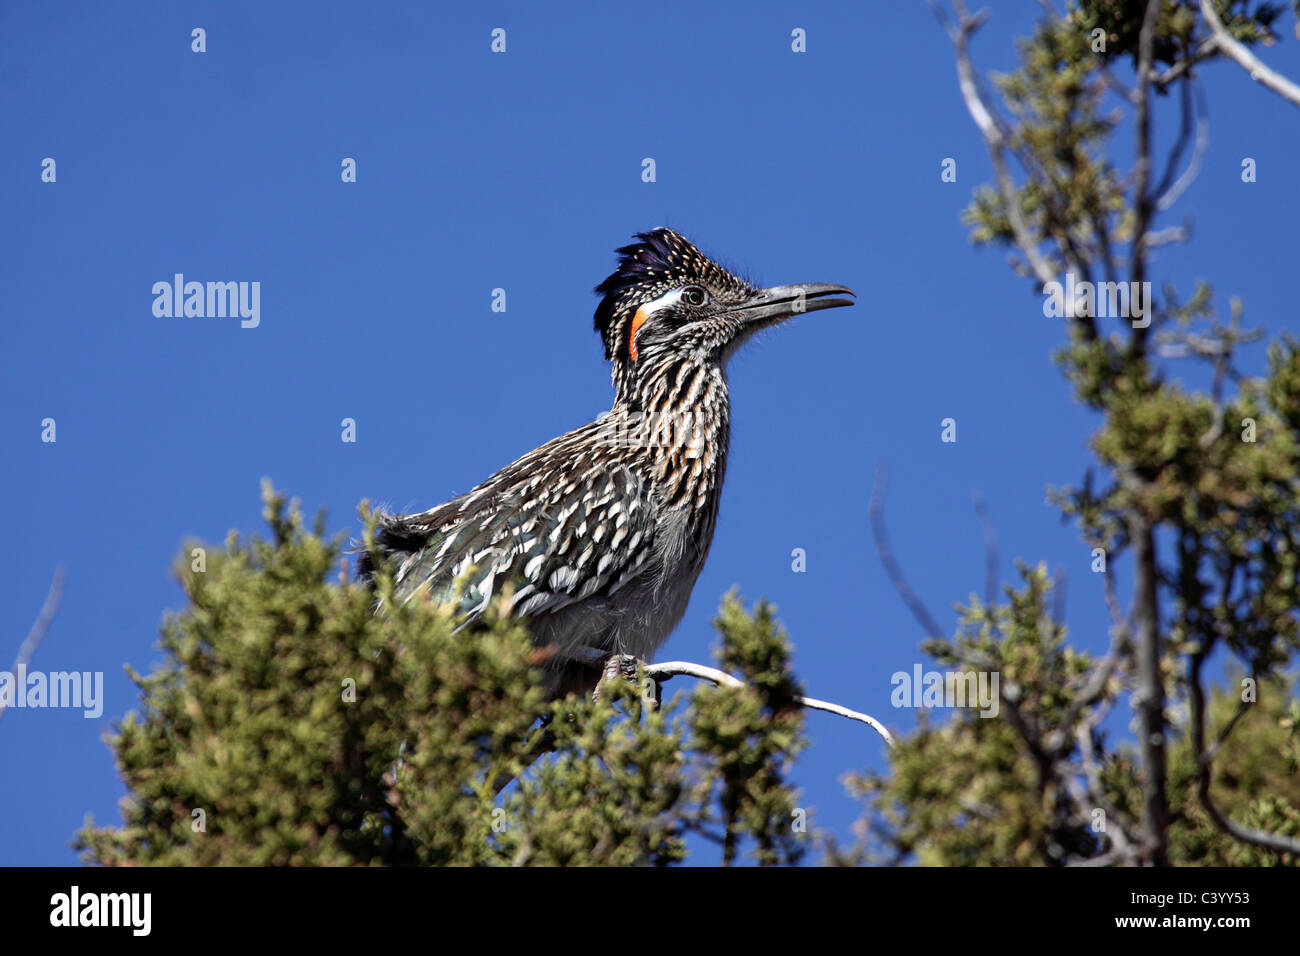 Greater roadrunner cooing from perch on top of Juniper tree in Arizona - Stock Image